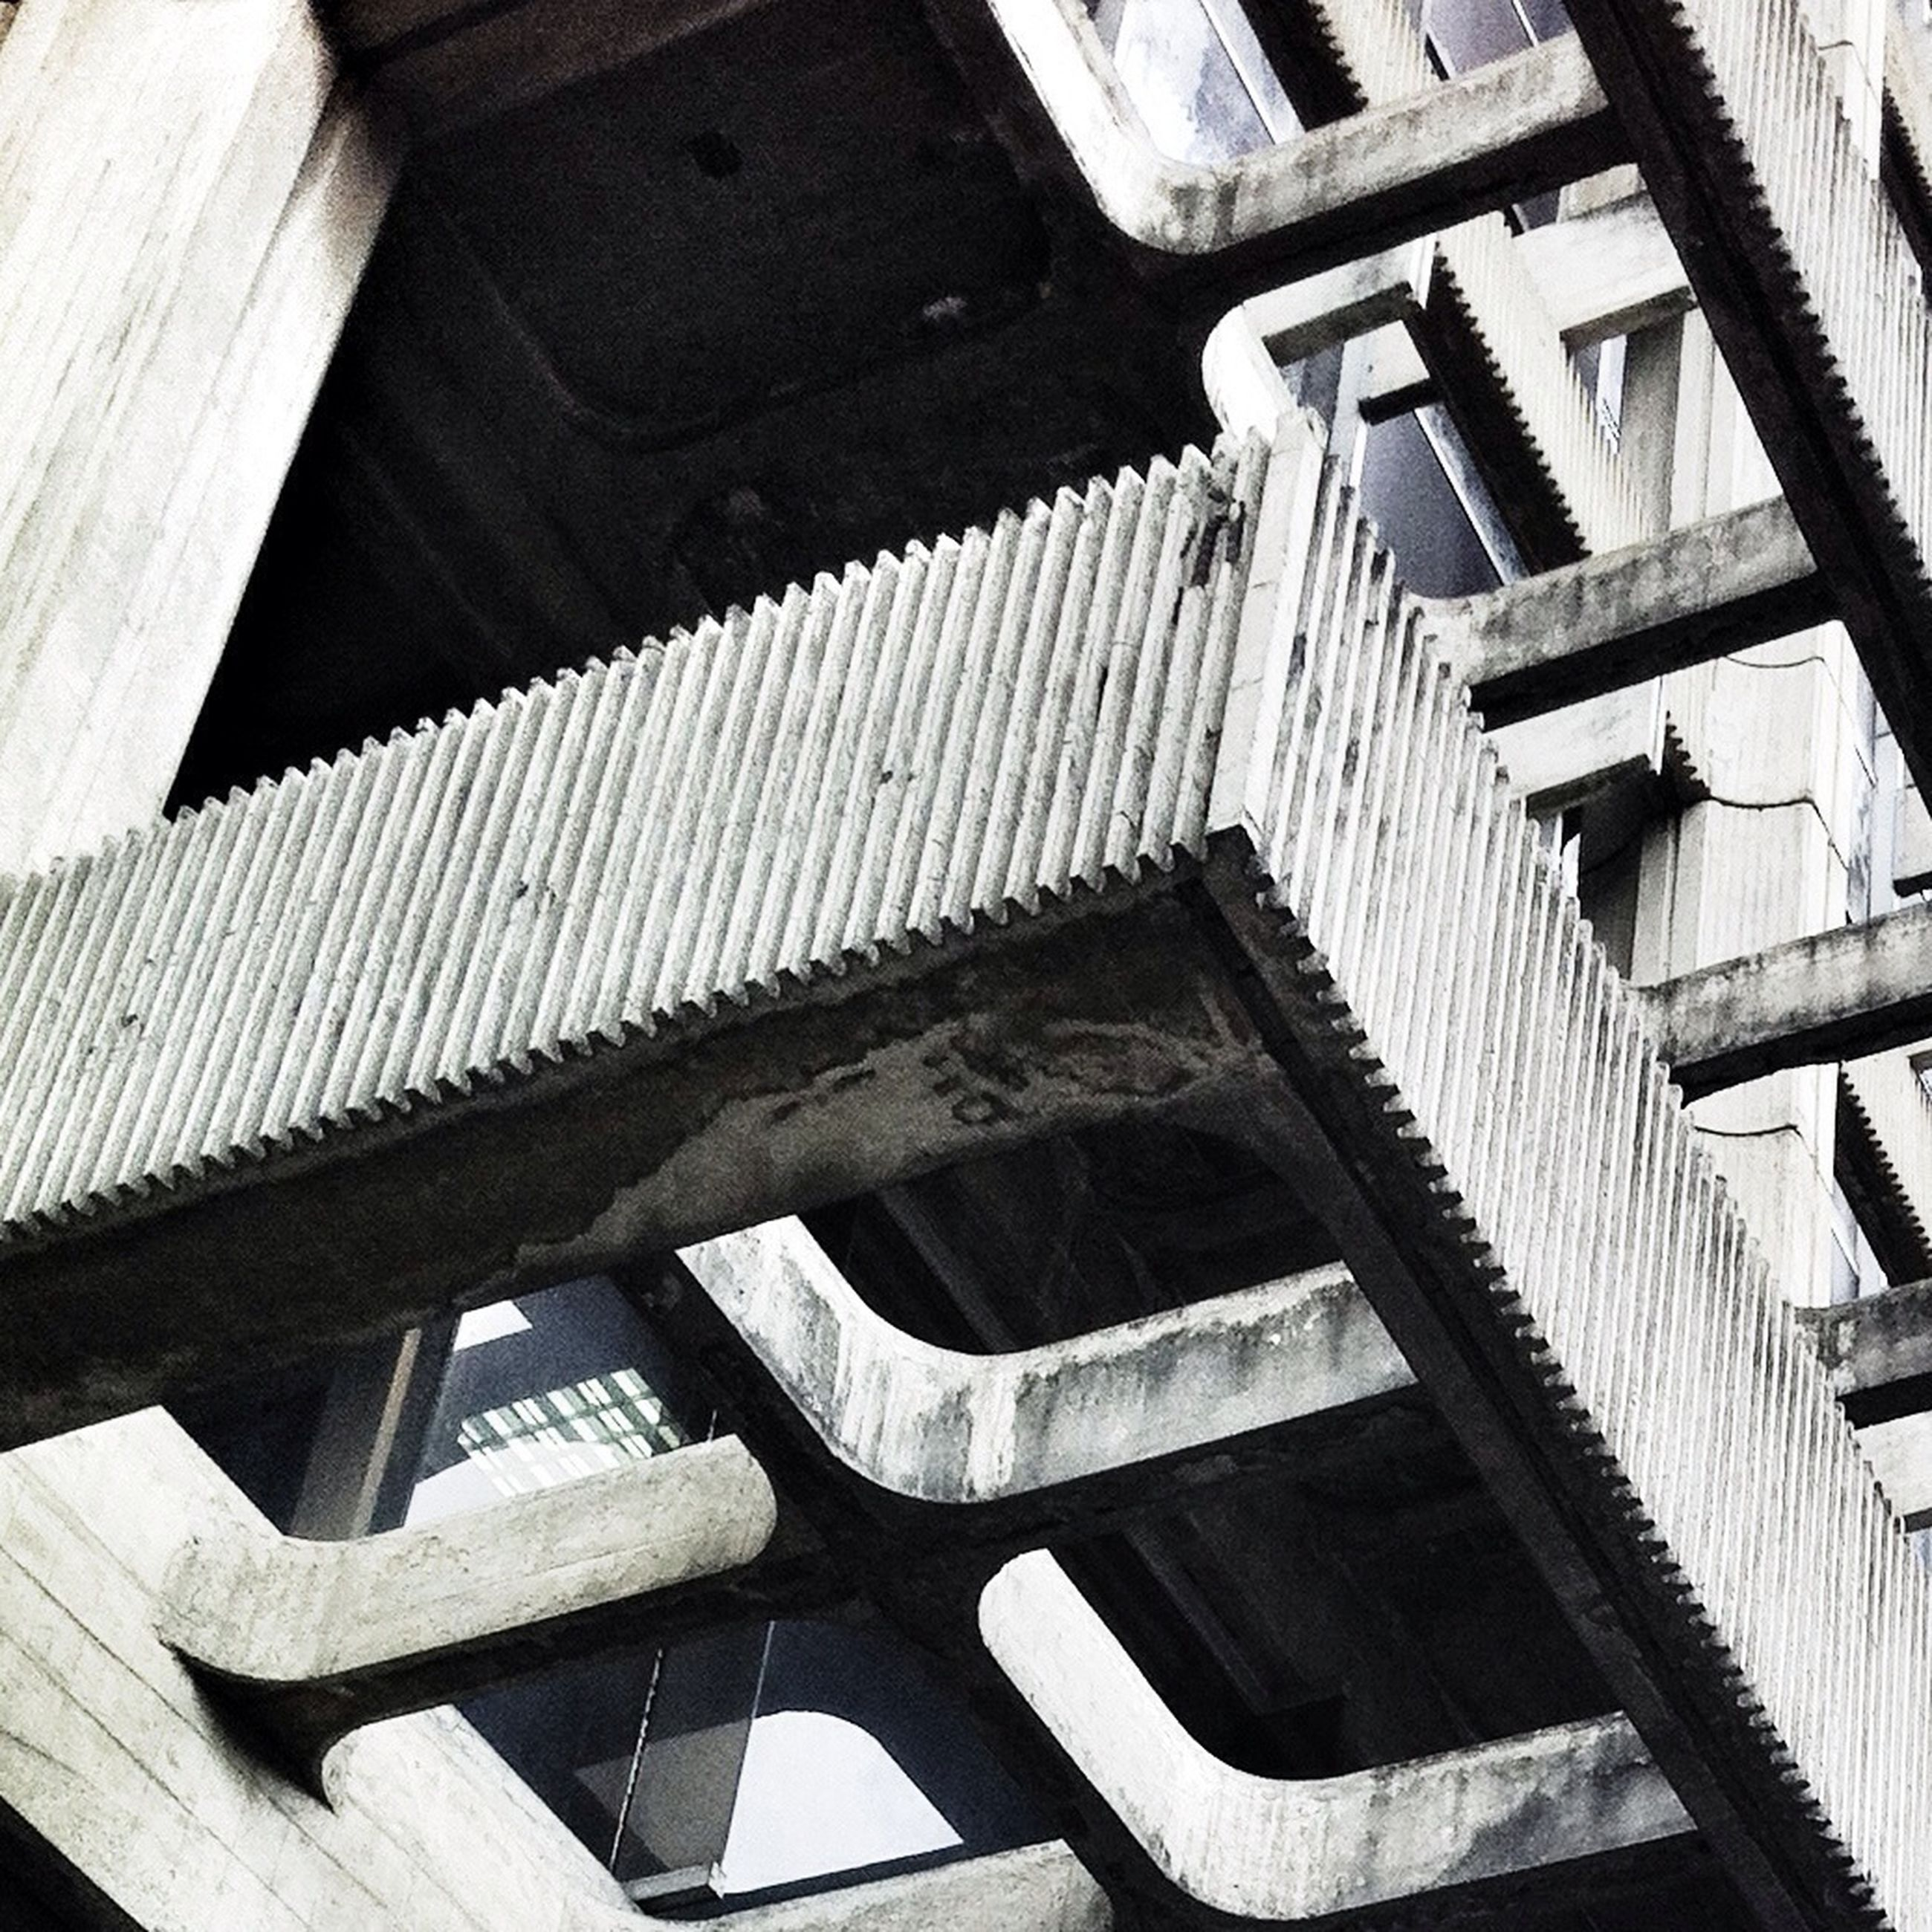 built structure, architecture, staircase, railing, steps and staircases, steps, high angle view, low angle view, building exterior, sunlight, no people, building, stairs, day, connection, outdoors, bridge - man made structure, shadow, metal, pattern